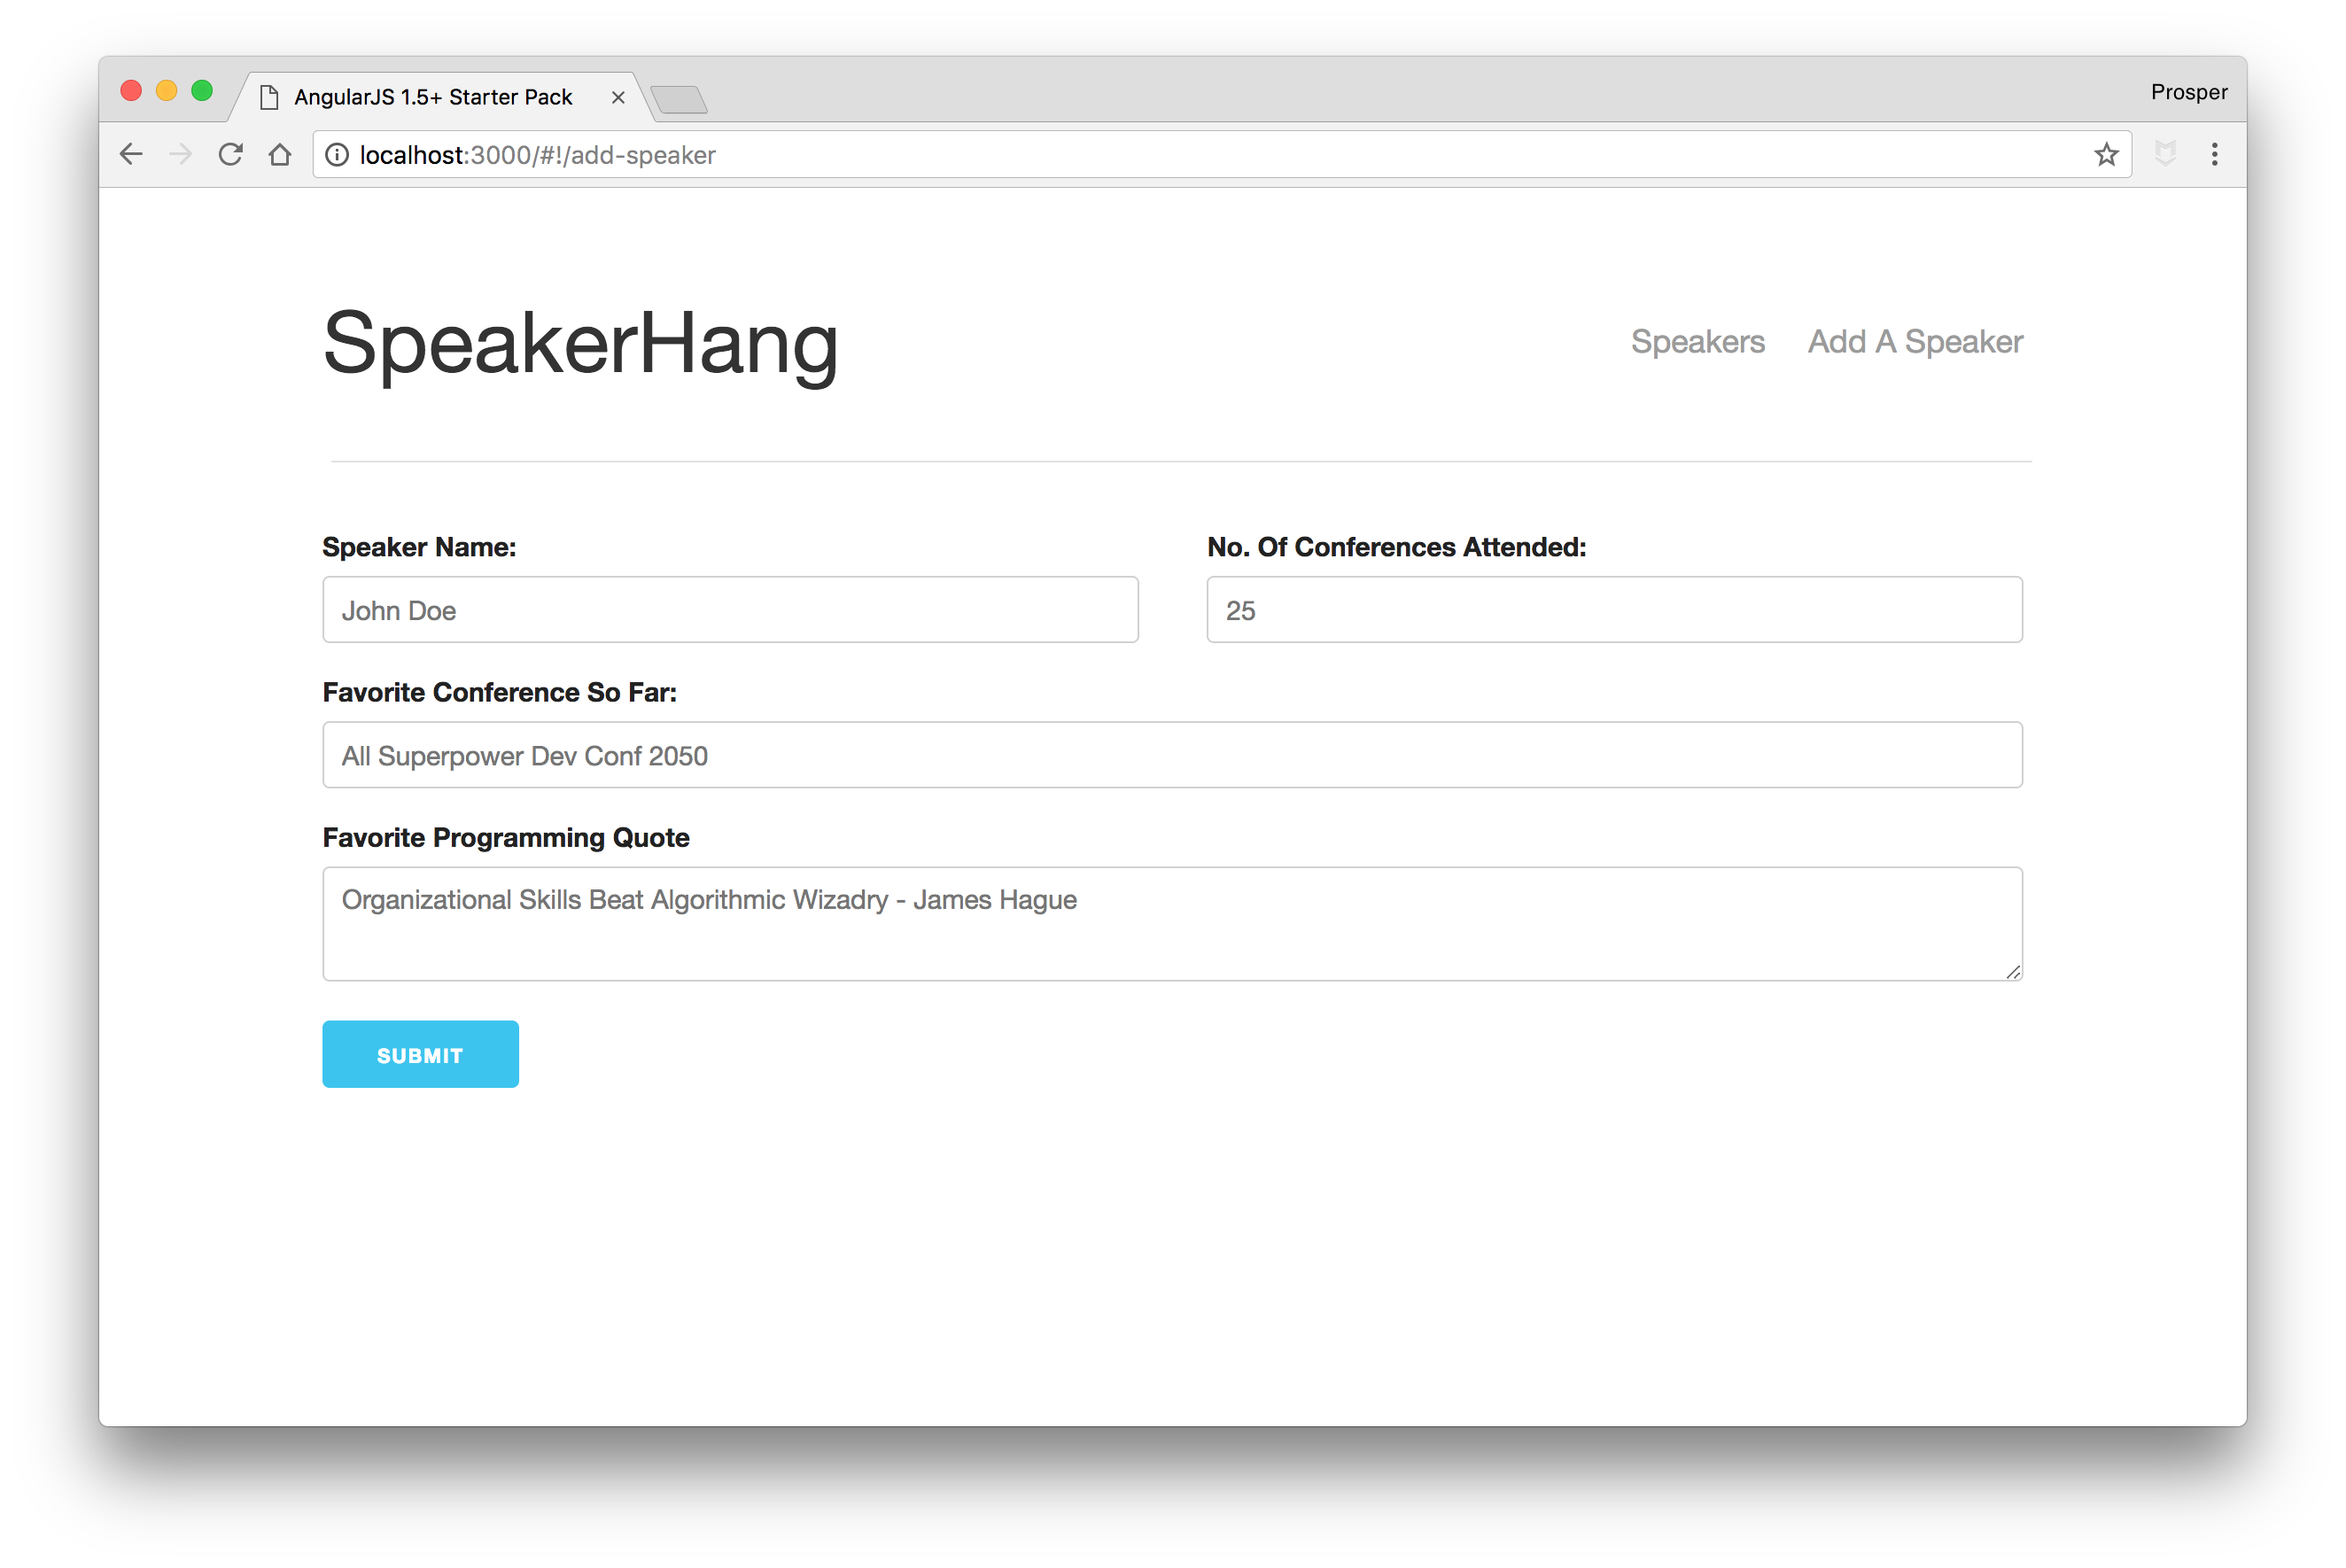 SpeakerHang - Add Speaker